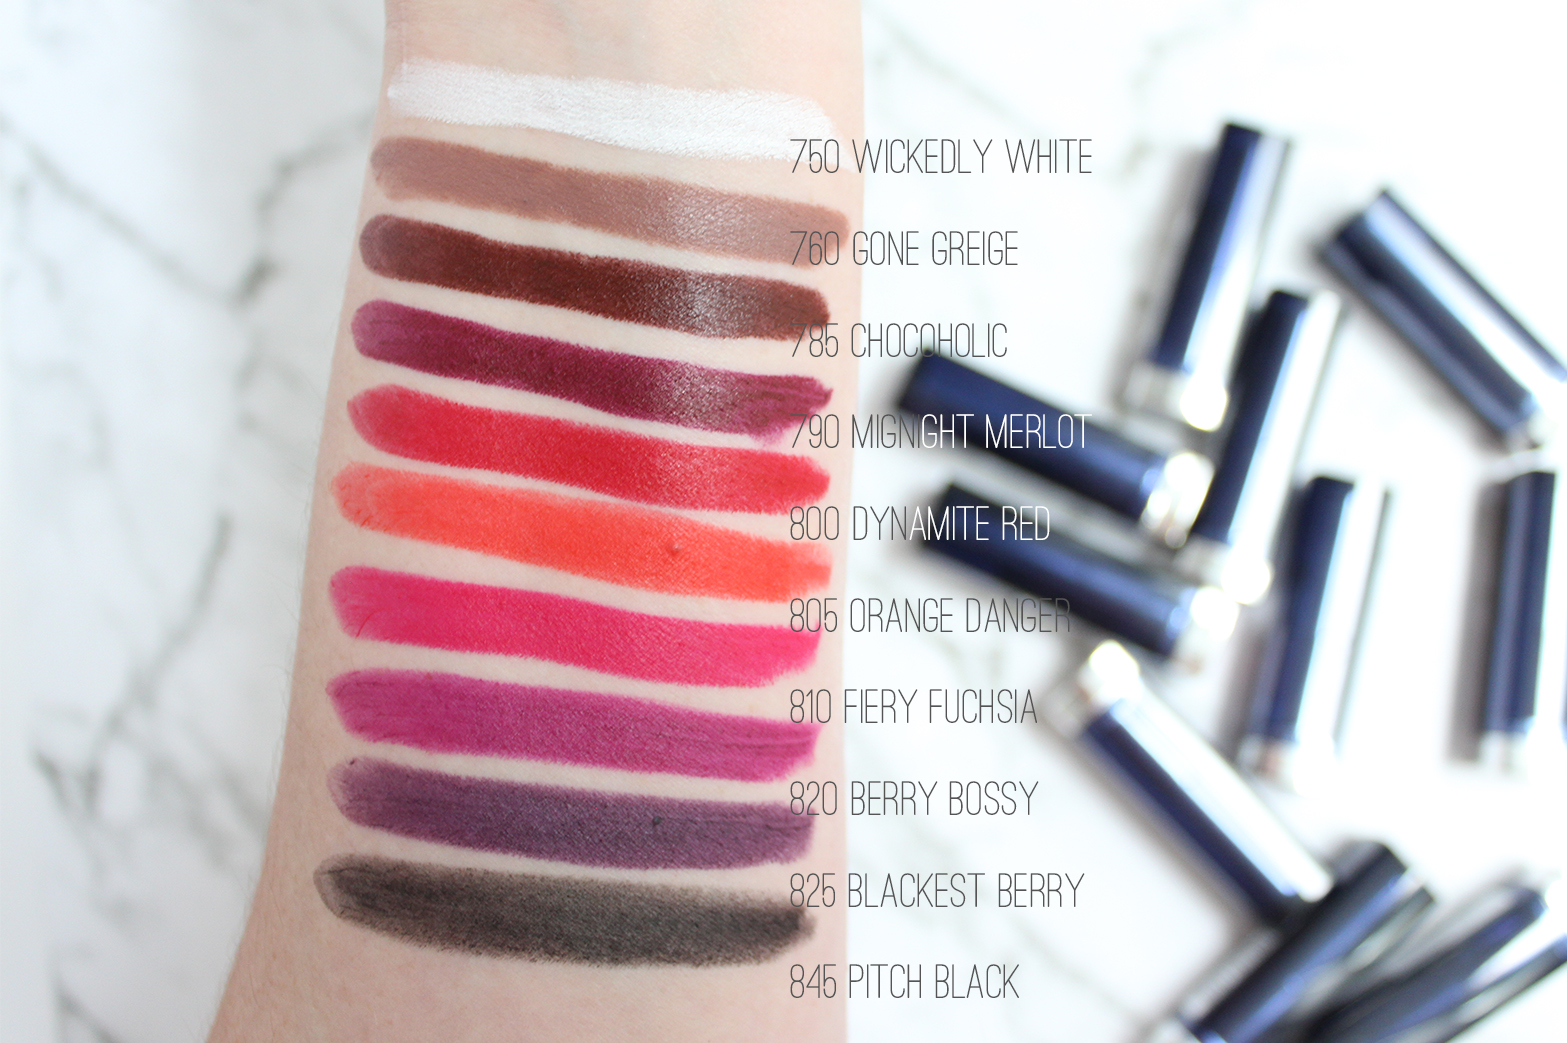 MAYBELLINE | The Loaded Bolds Lipsticks - Review + Swatches - CassandraMyee